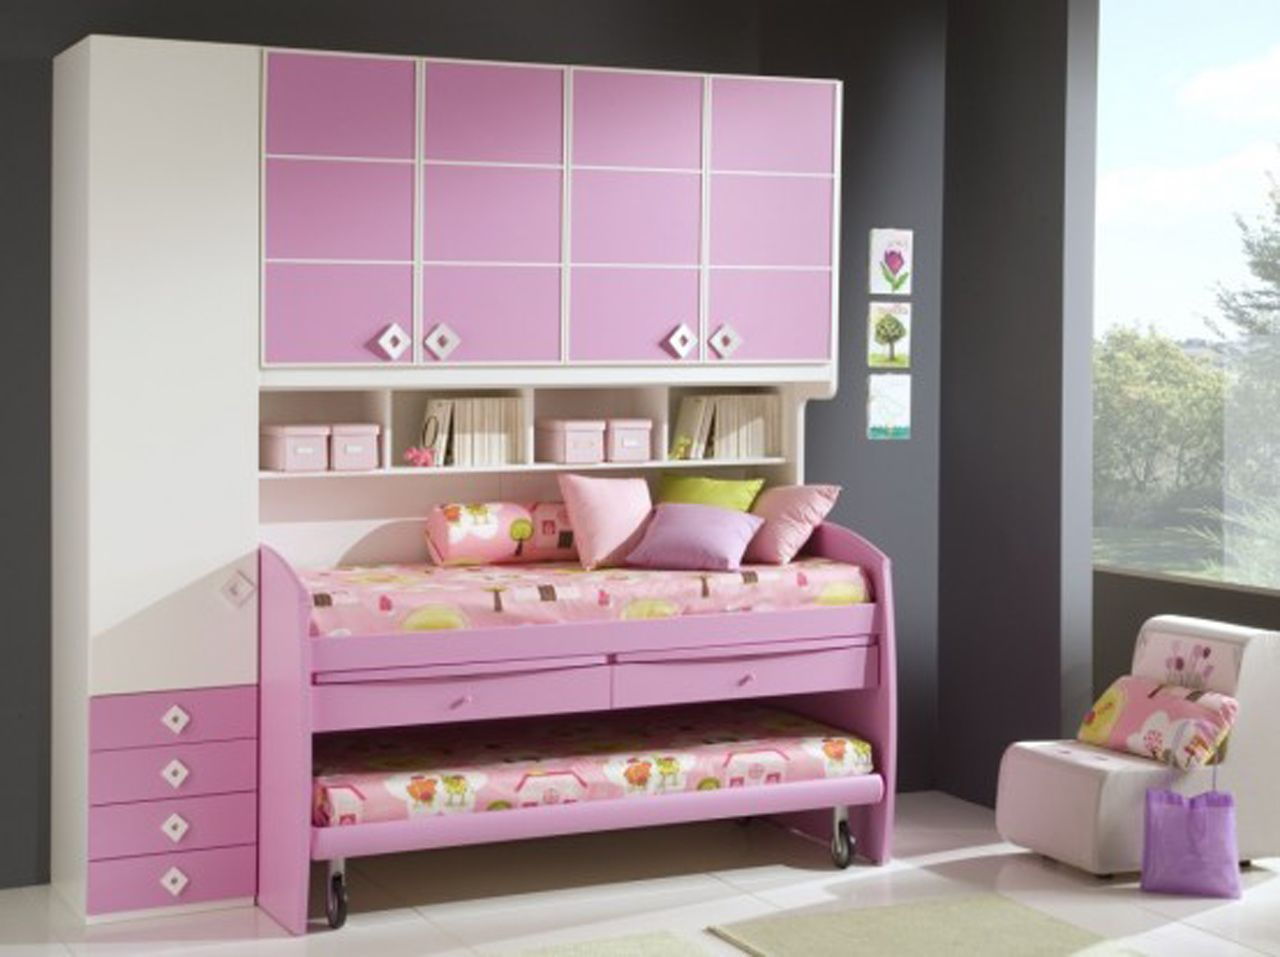 Cool Bedroom Ideas For Teenagers Minimalist Remodelling lovely bunk bed design for teenage girl with dark black wall paint